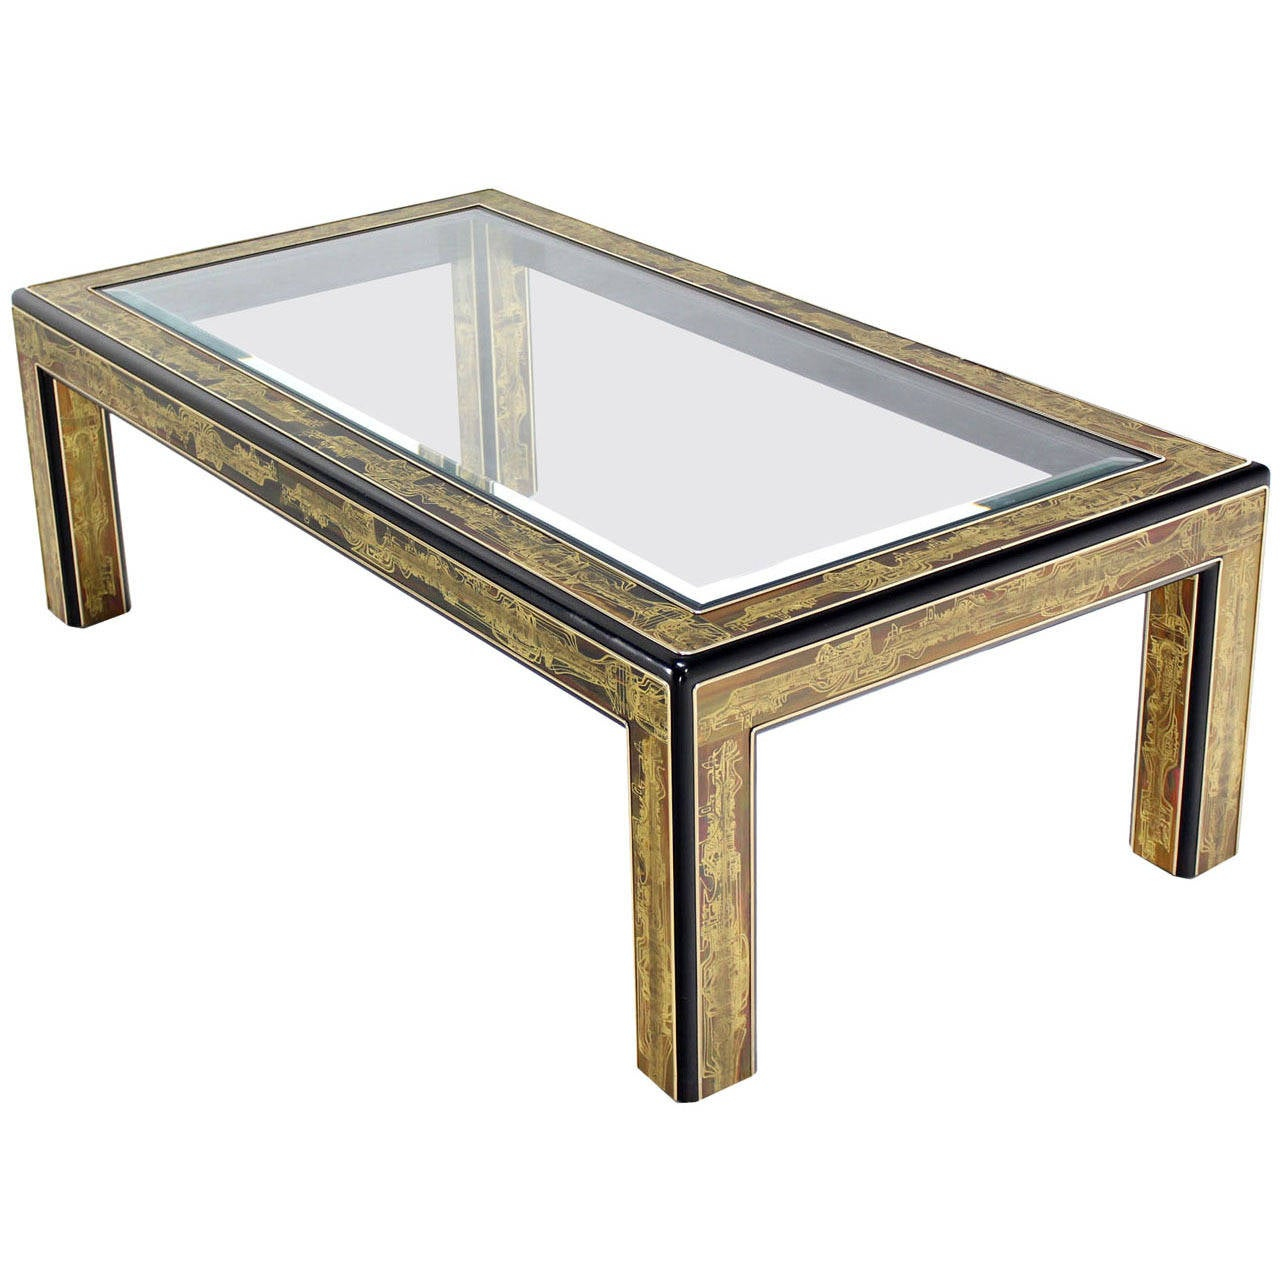 Rectangular glass top brass and wood base coffee table by Glass coffee table tops